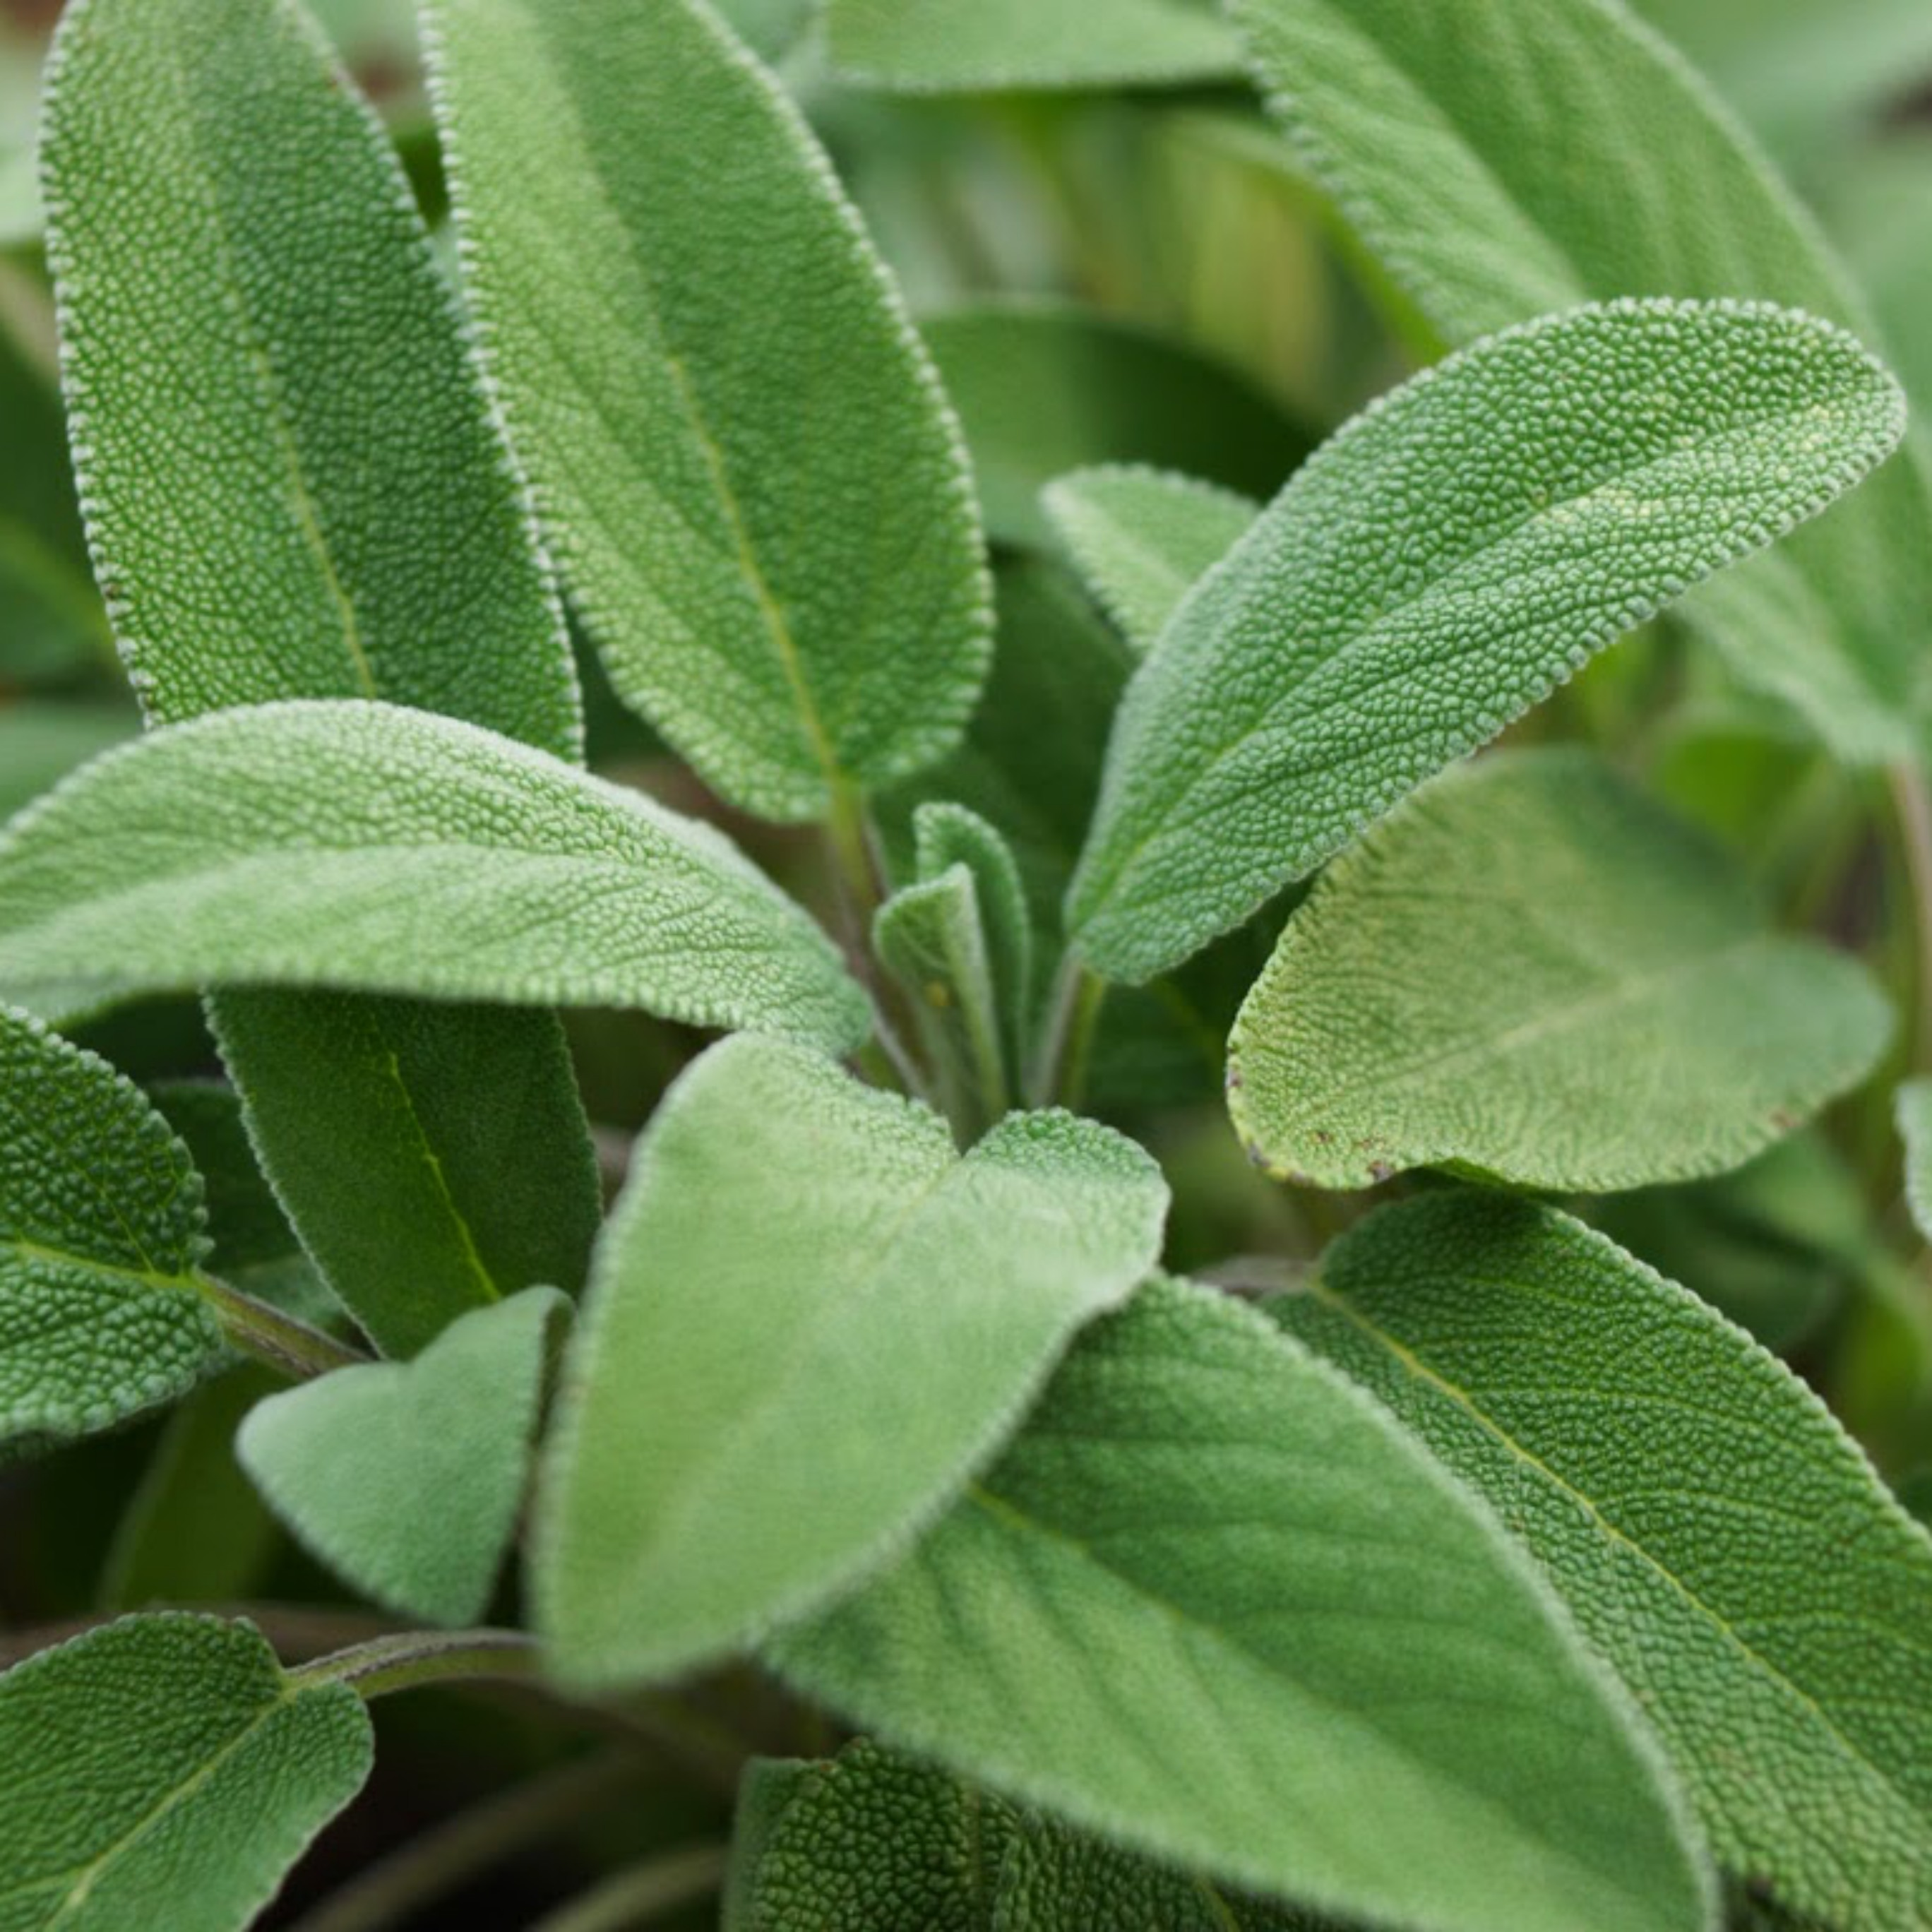 Common sage leaves cultivation